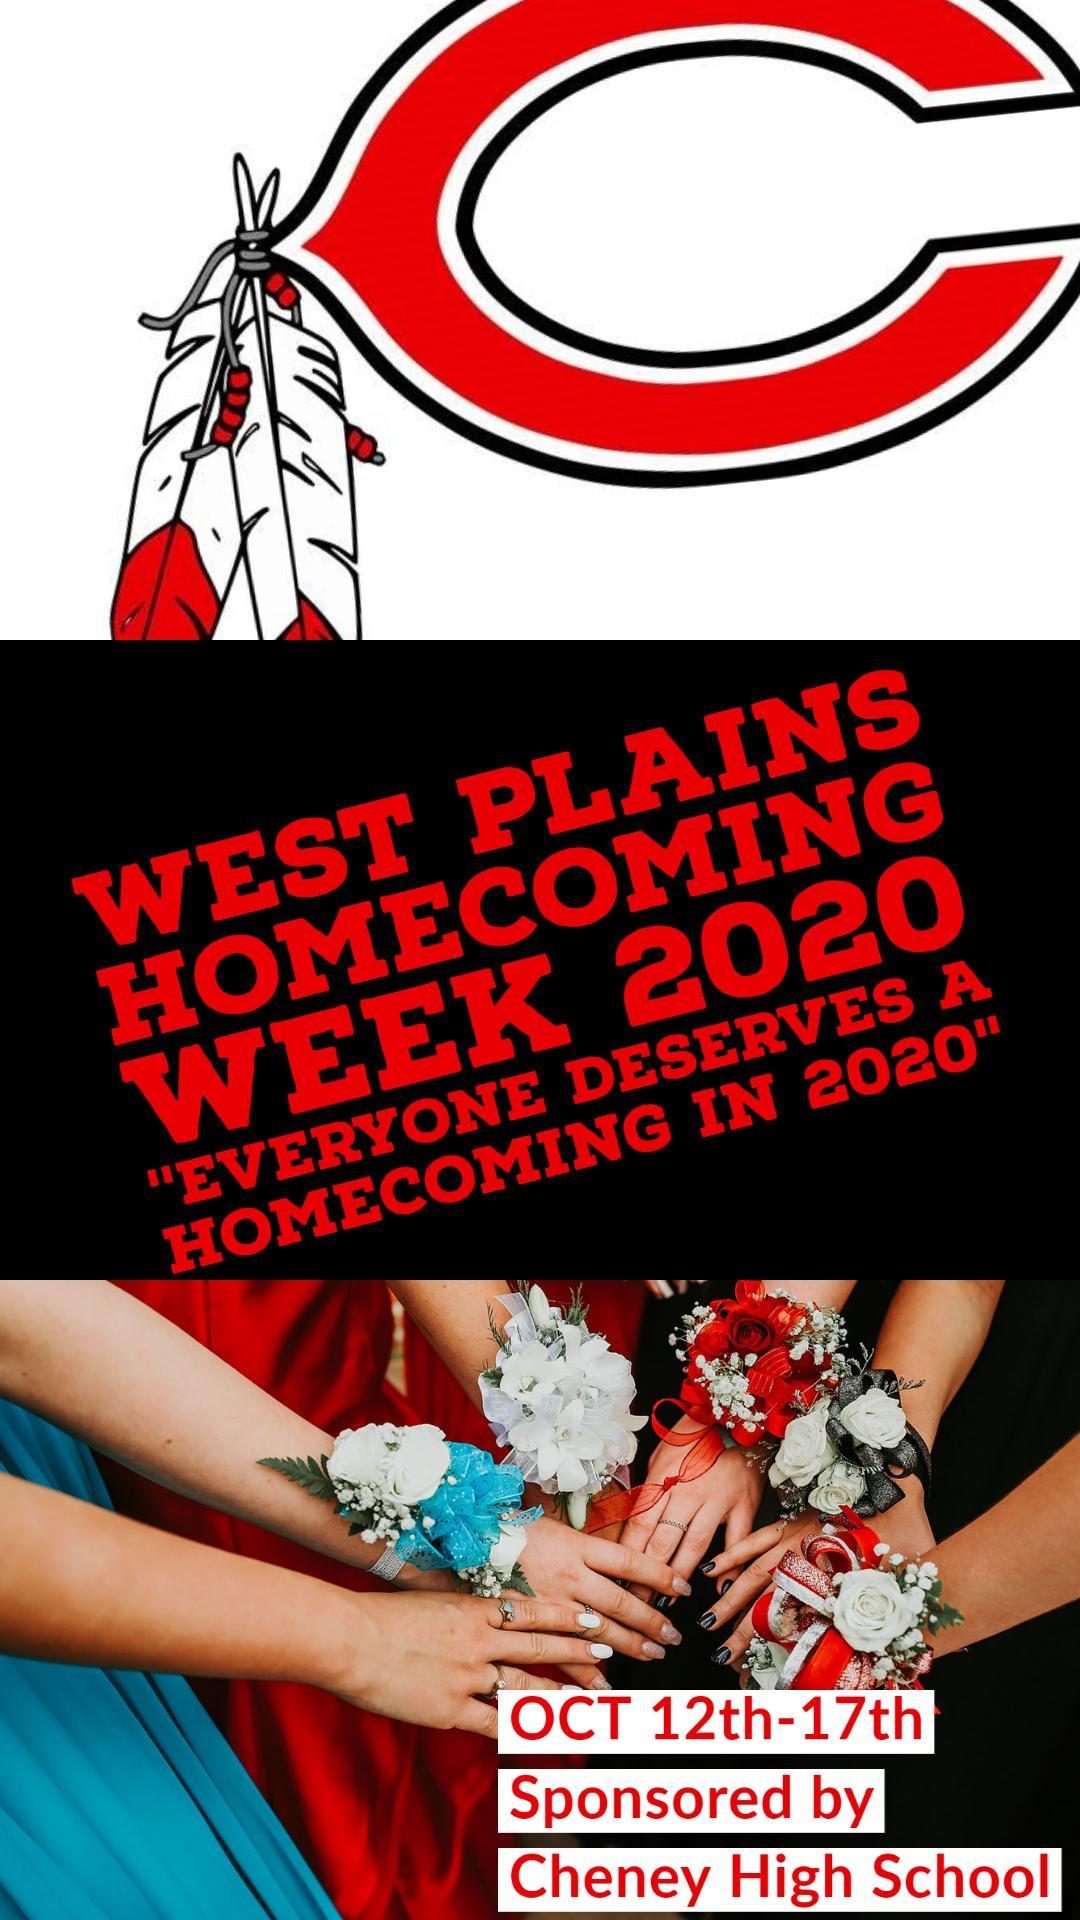 west plains homecoming week 2020